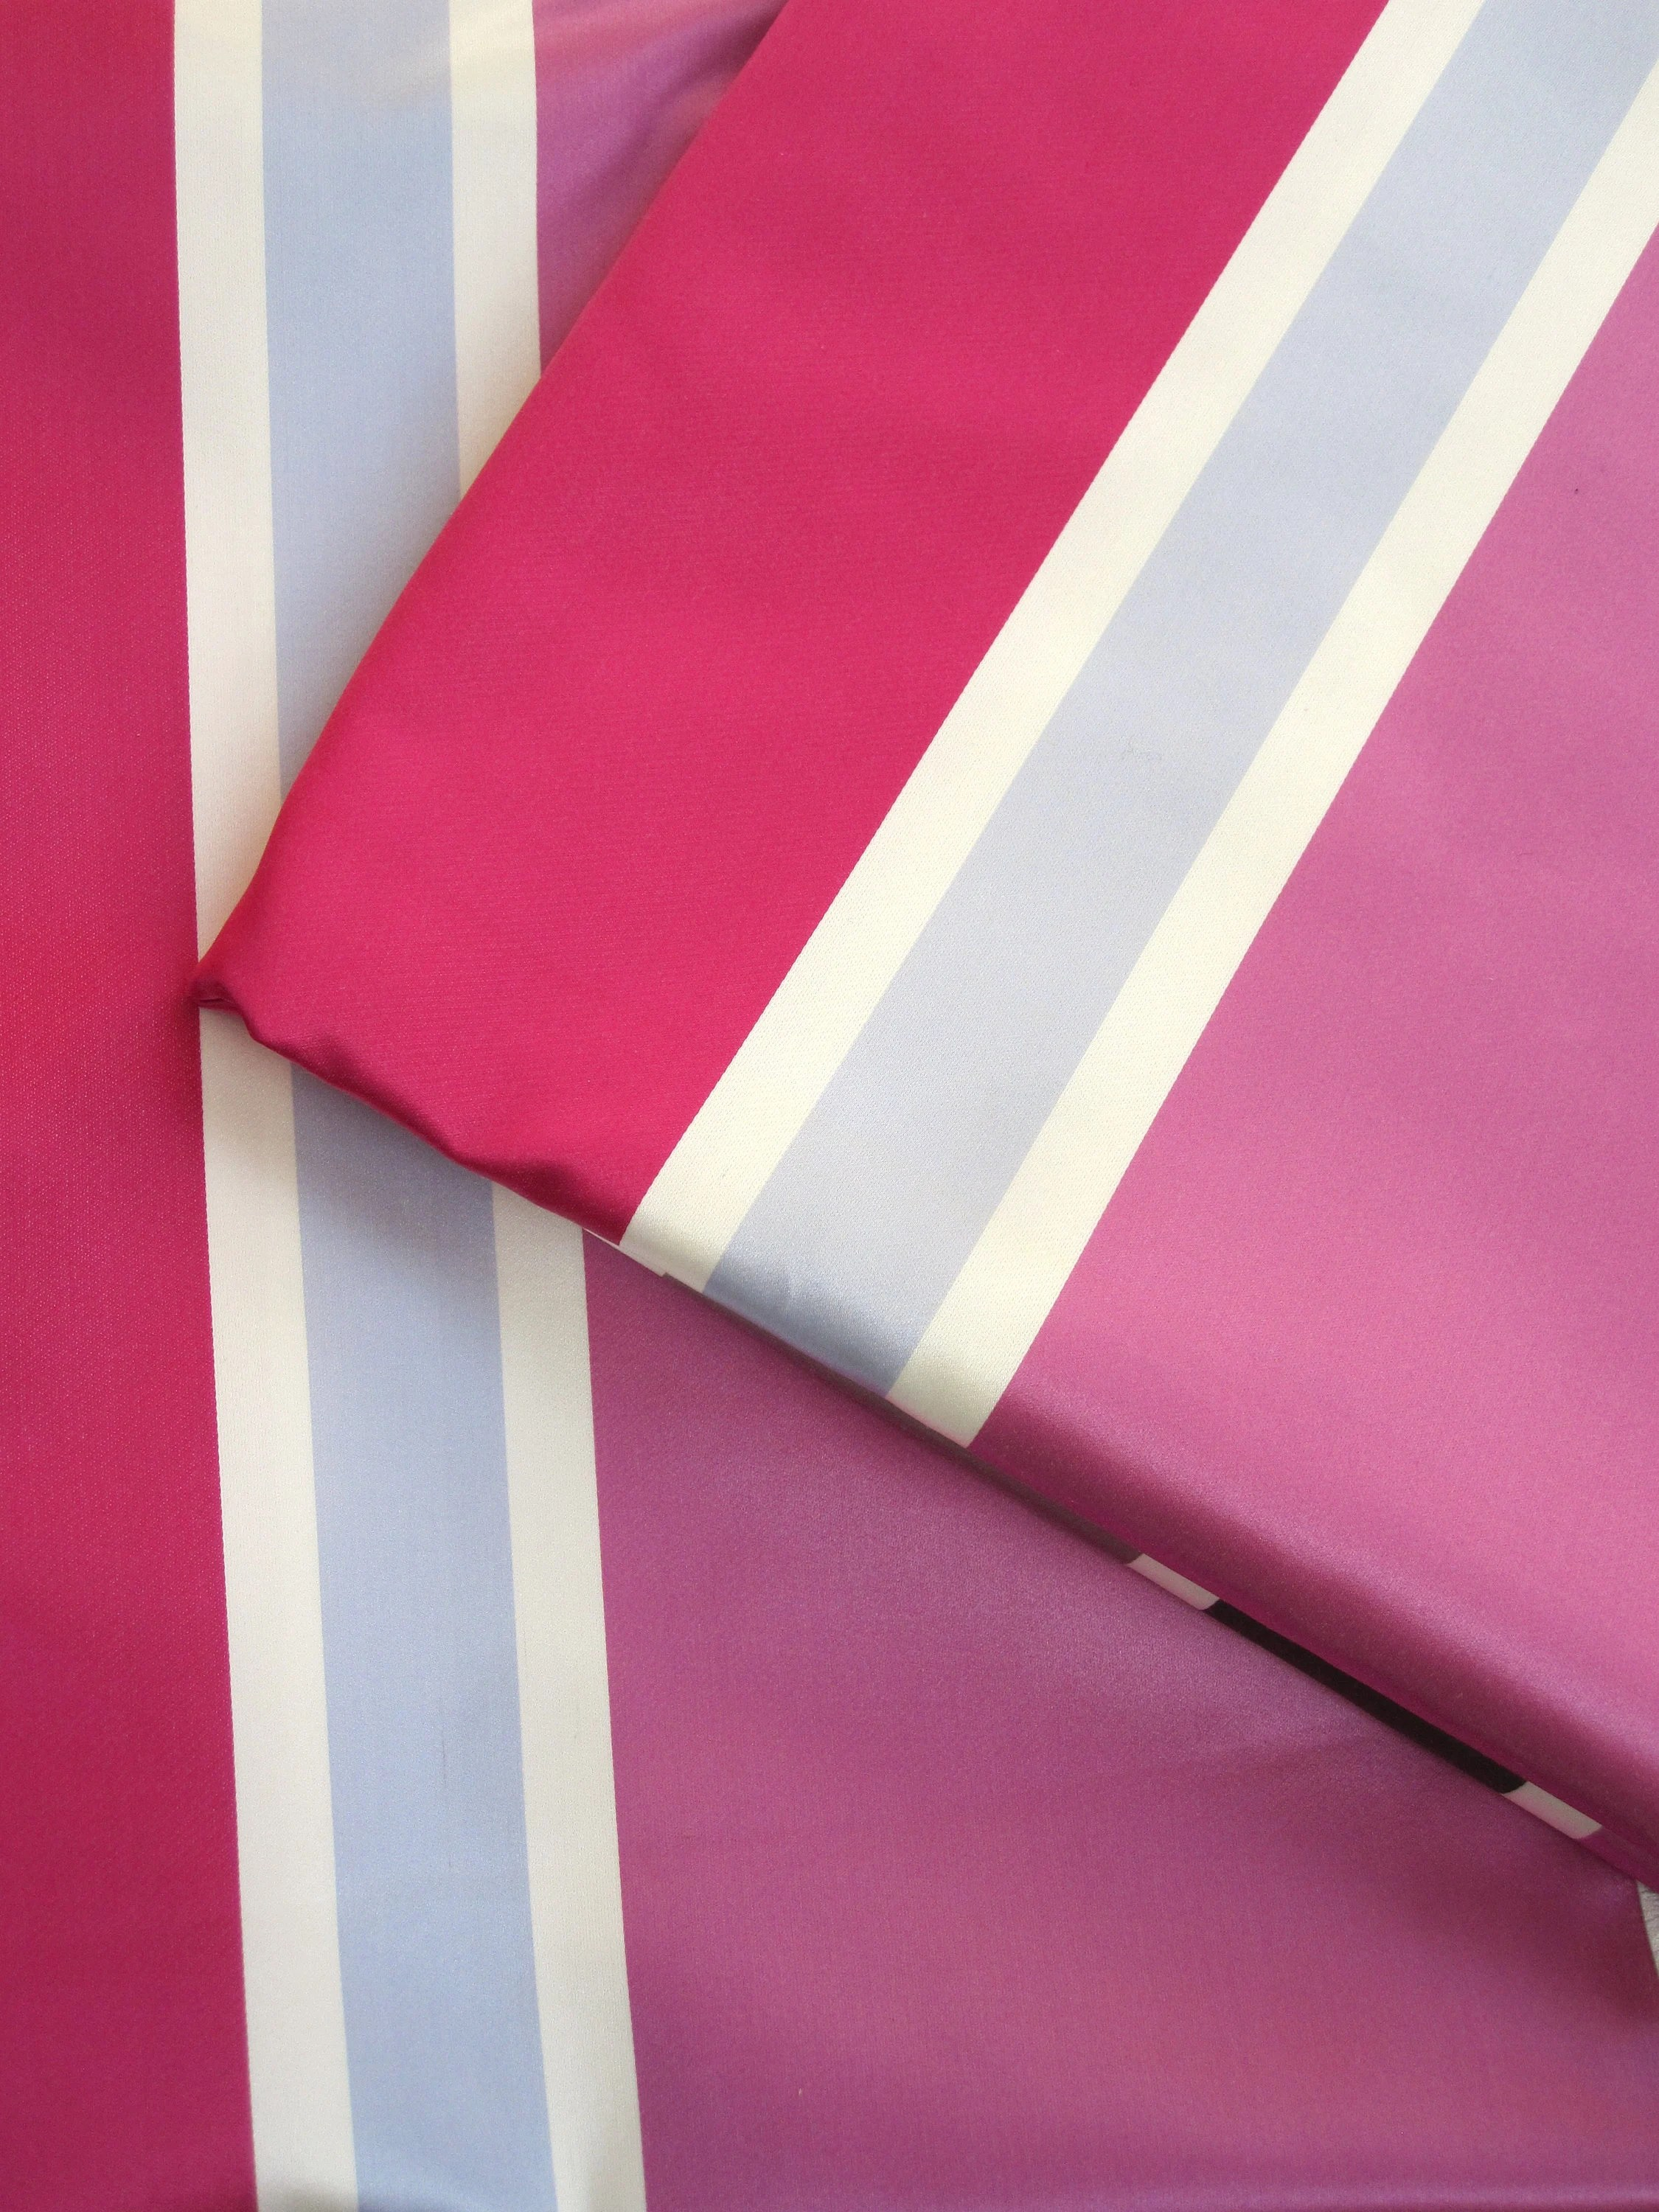 Satin Meterware Sale Meterware Satin Stripes Fabric Fabric Tissu Pattern Pink Pink Bleu Jab